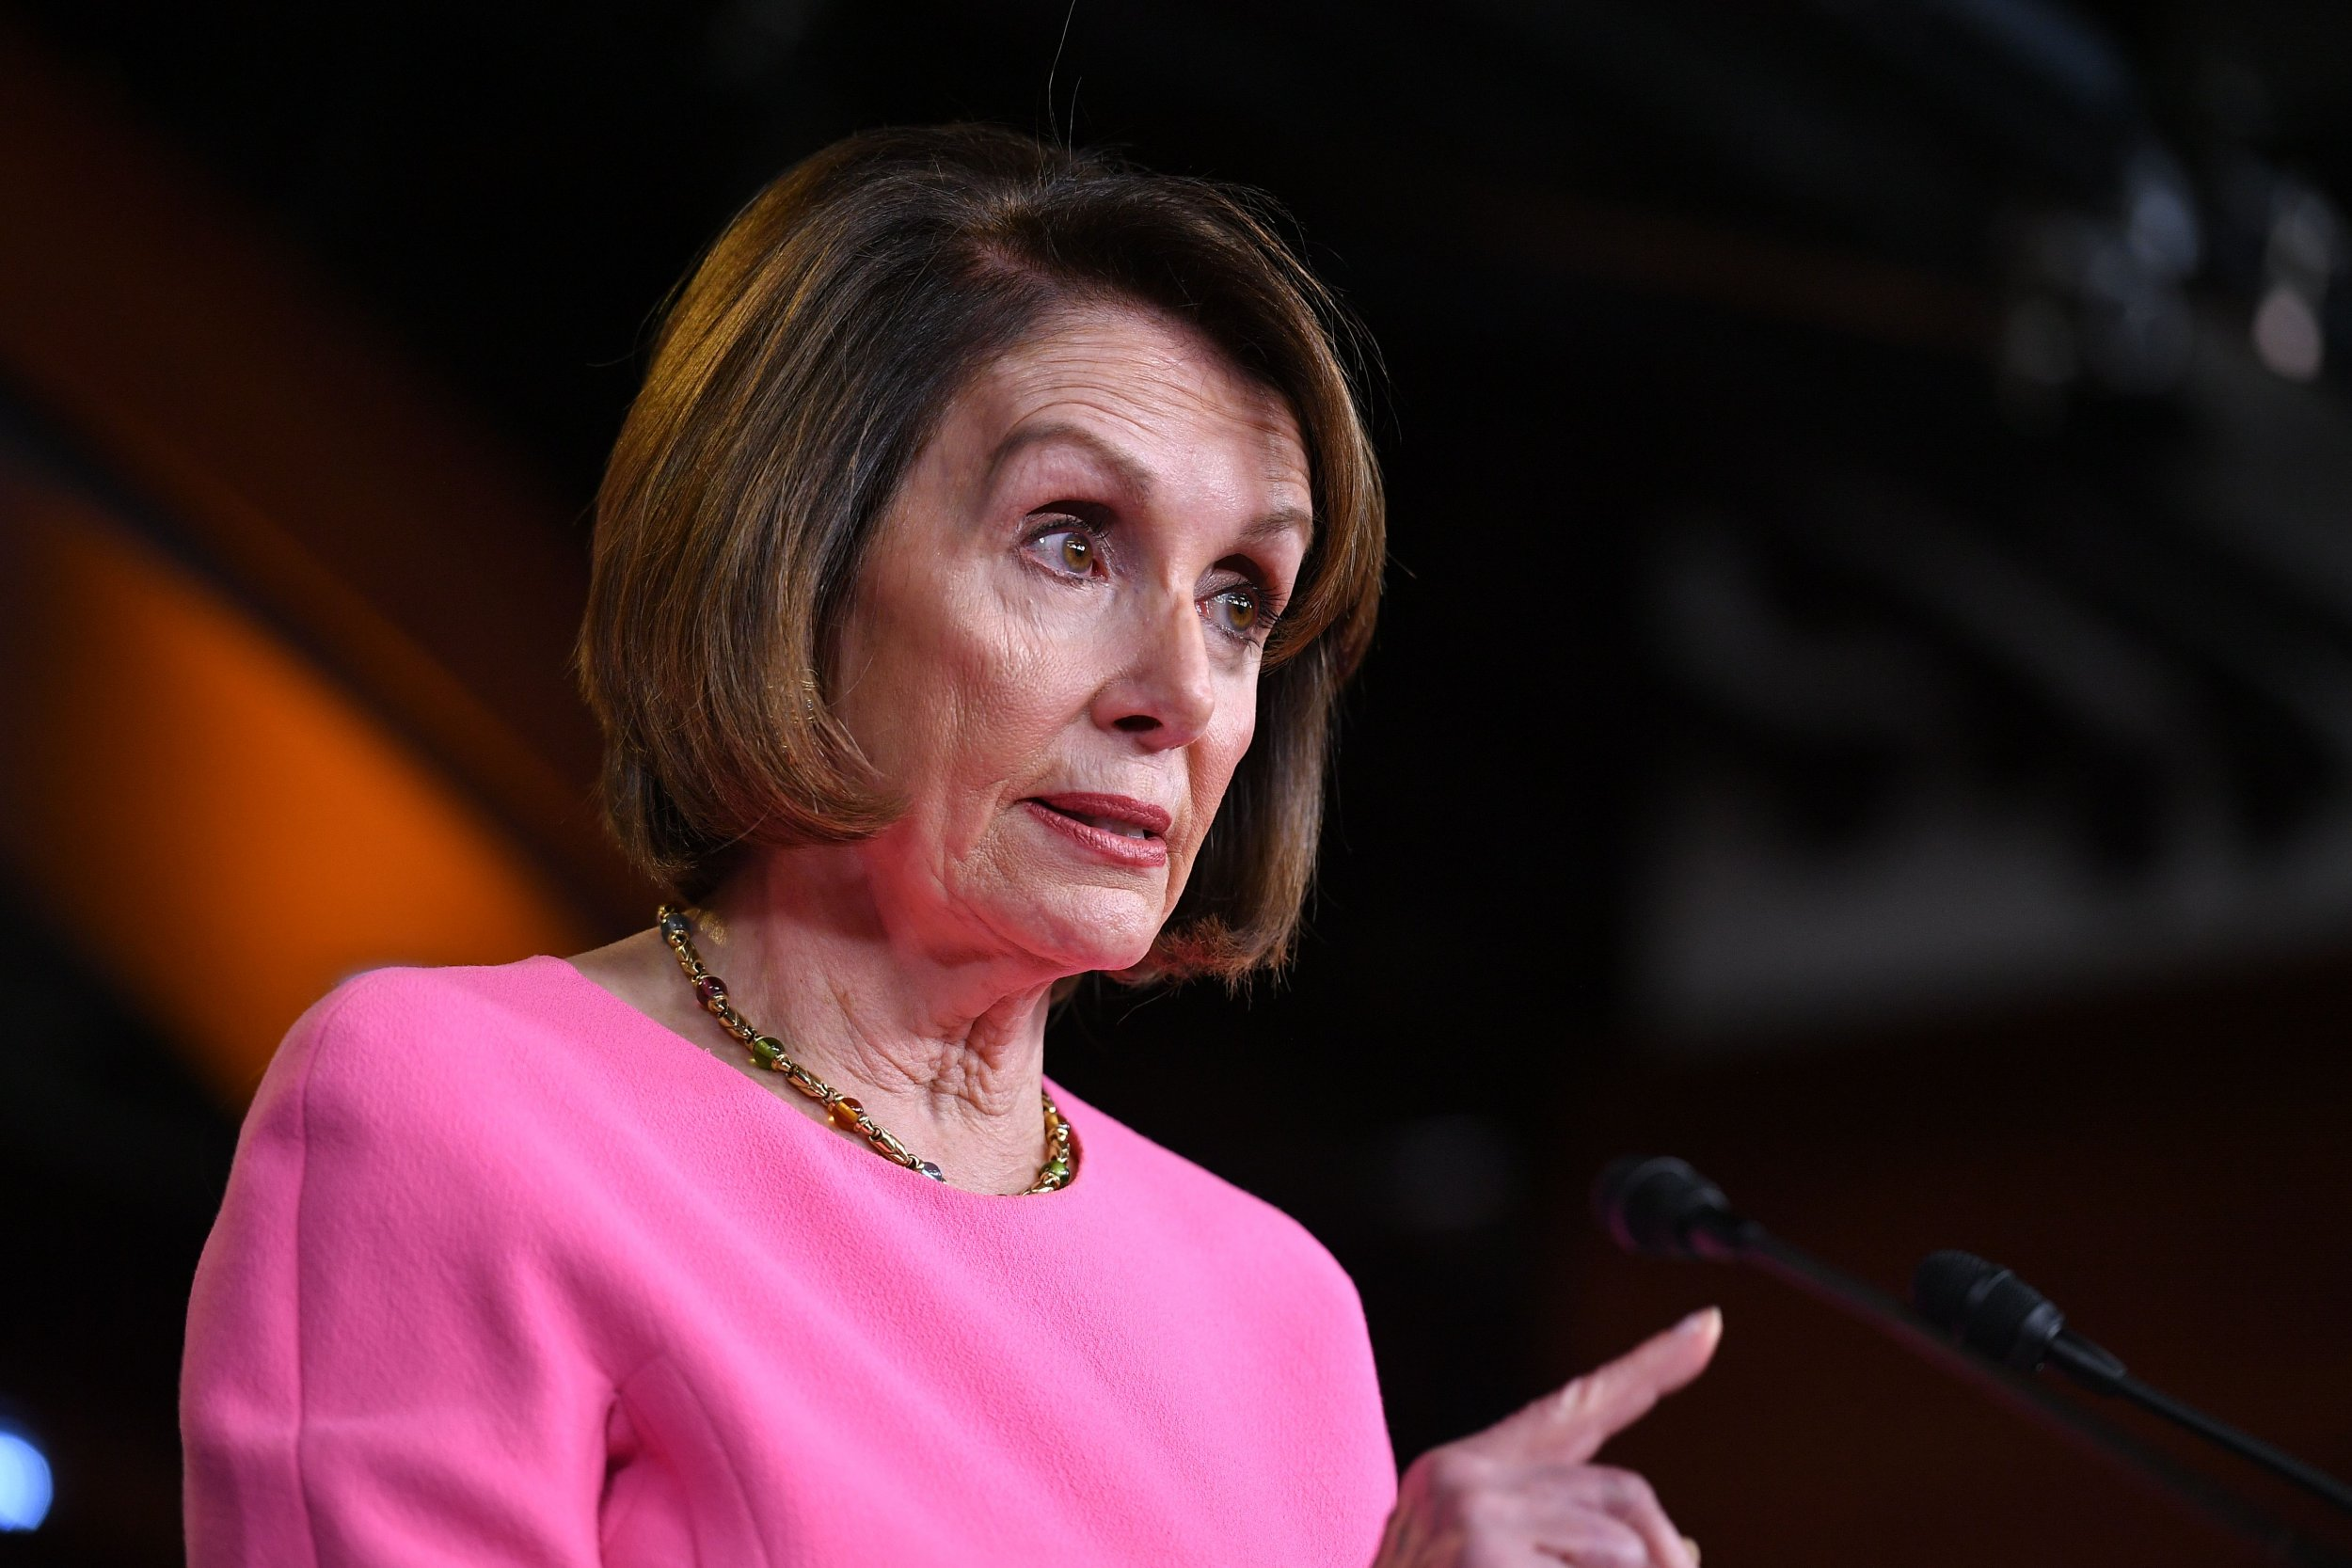 Nancy Pelosi, Trump needs an intervention